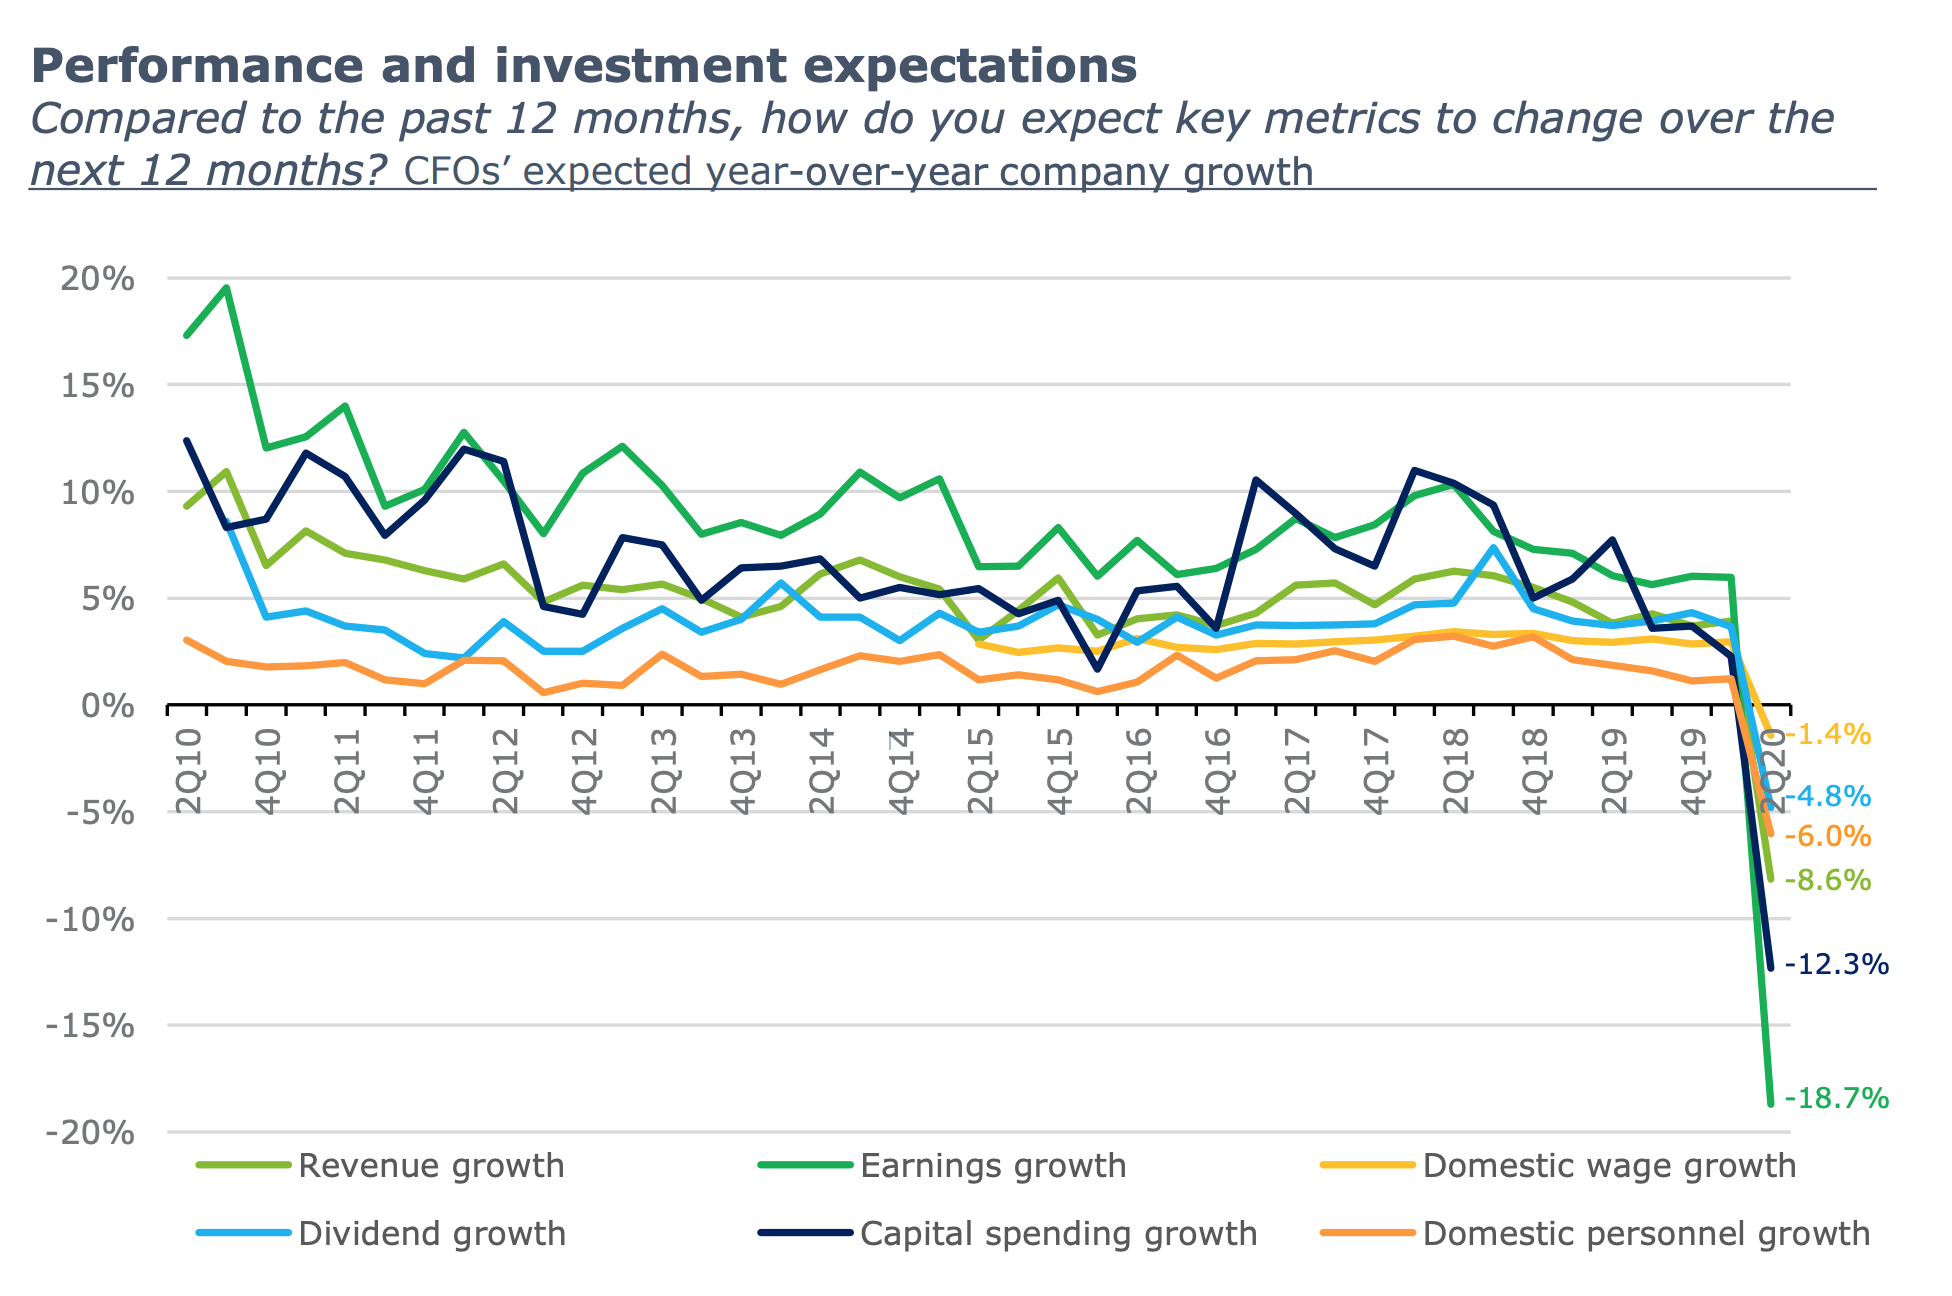 Deloitte CFO Signals 2Q20 Survey: Performance and investment expectations drop dramatically [chart]